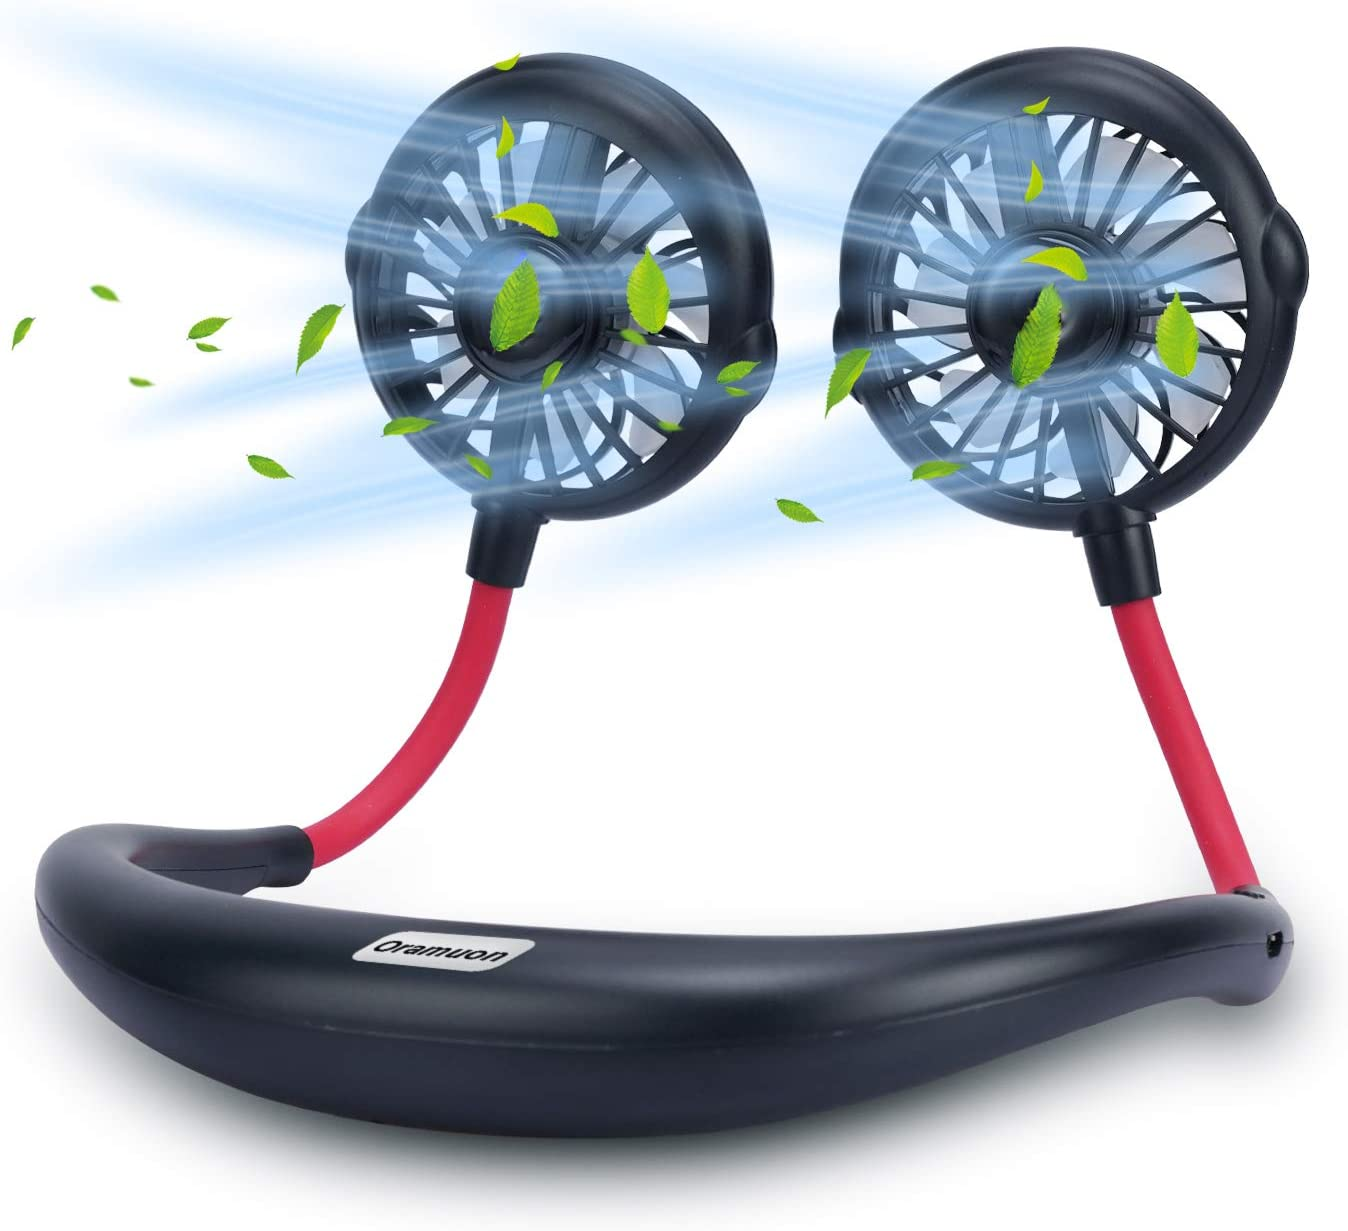 Office GINEKOO Portable Mist Neck Fan Travel Personal Spray Fan with 3 Level Air speeds and 360/° Free Rotation Perfect for Outdoor Sport Hand Free Mini USB Fan Rechargeable